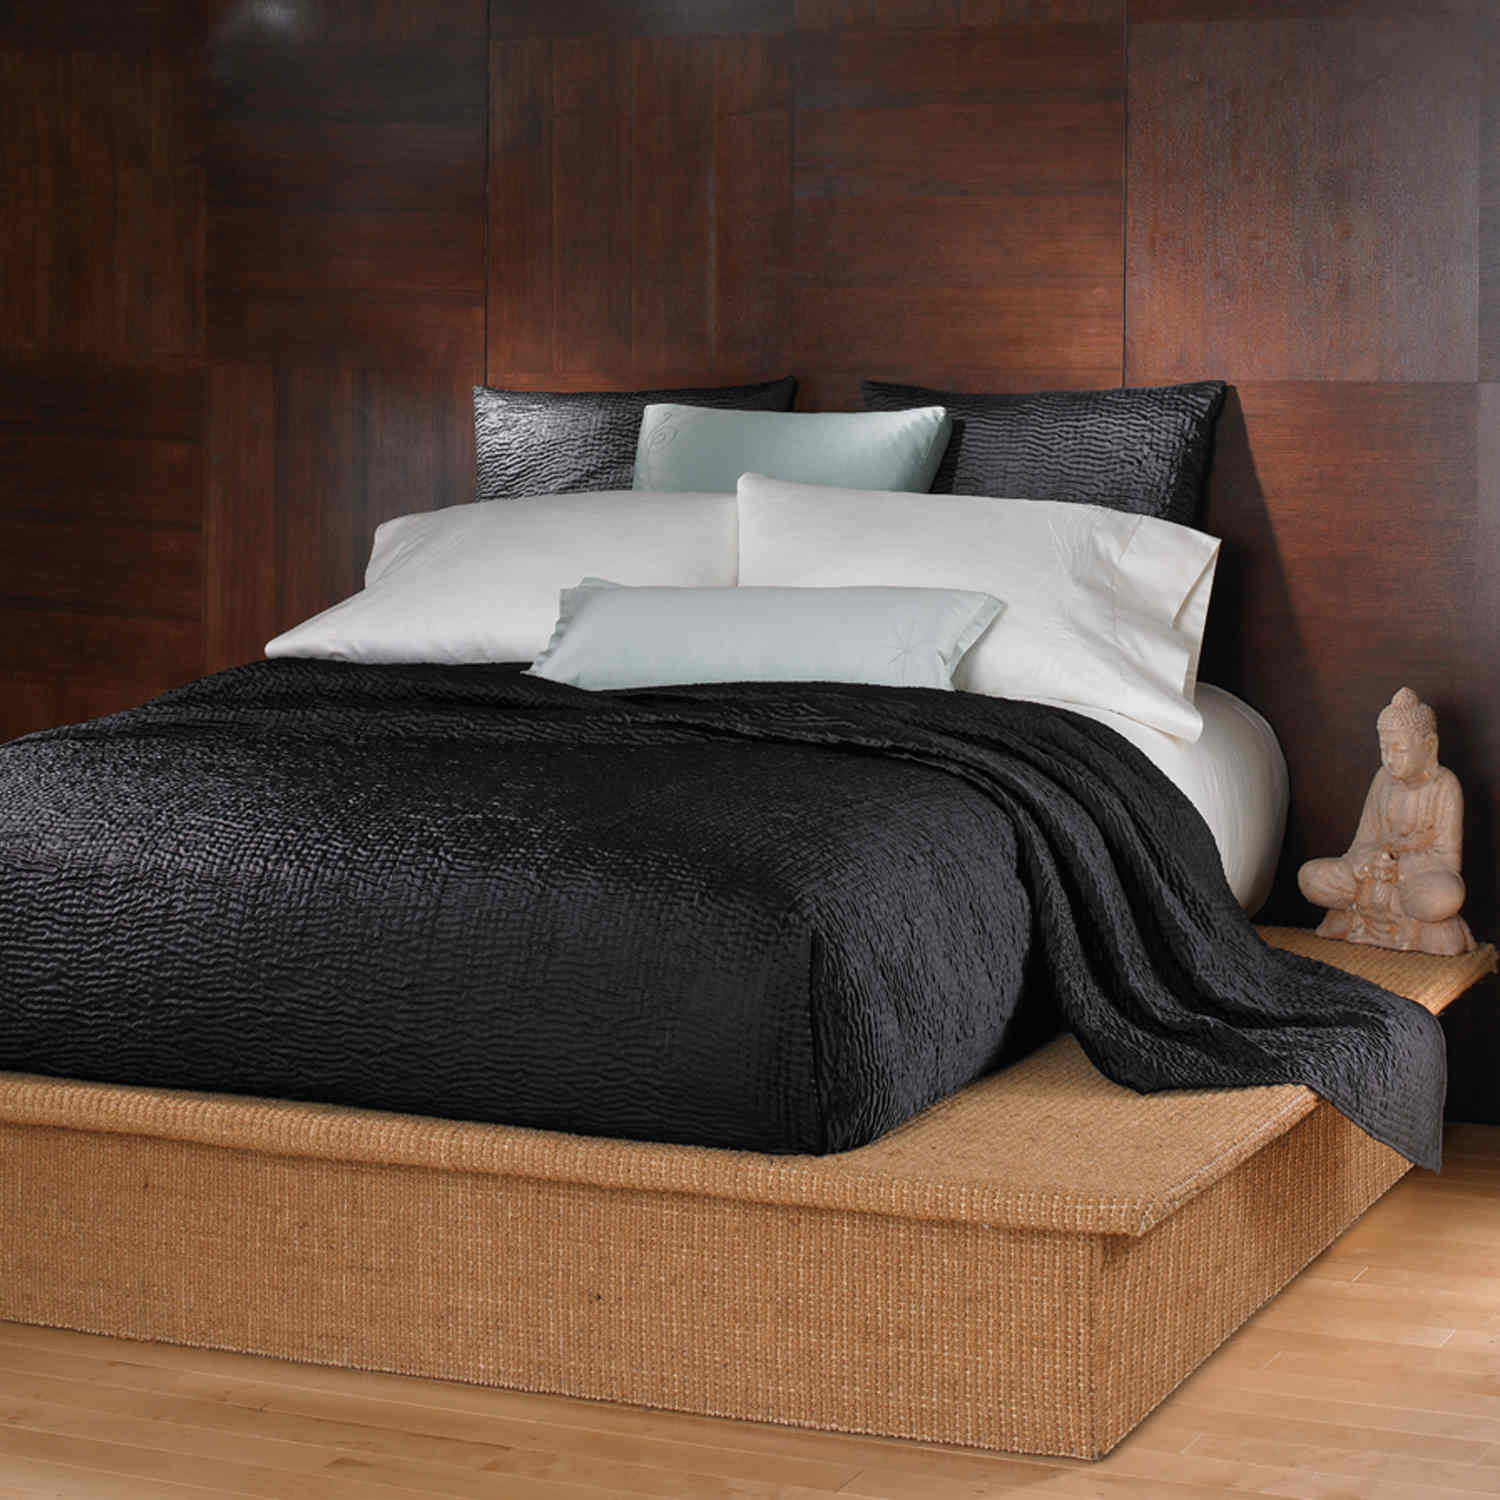 wildcat territory bedding shanti black collection - wildcat territory shanti black handstitched textured satin polyestercoverlet  euro sham set